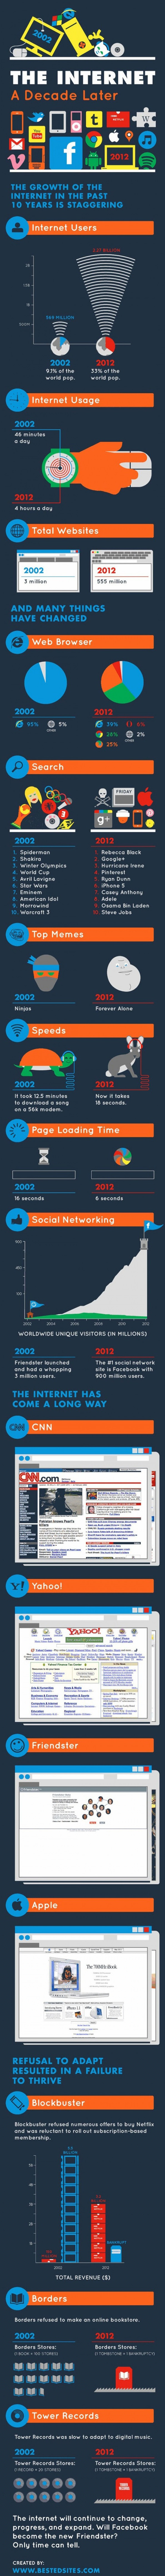 The growth of the internet over 10 years infographic